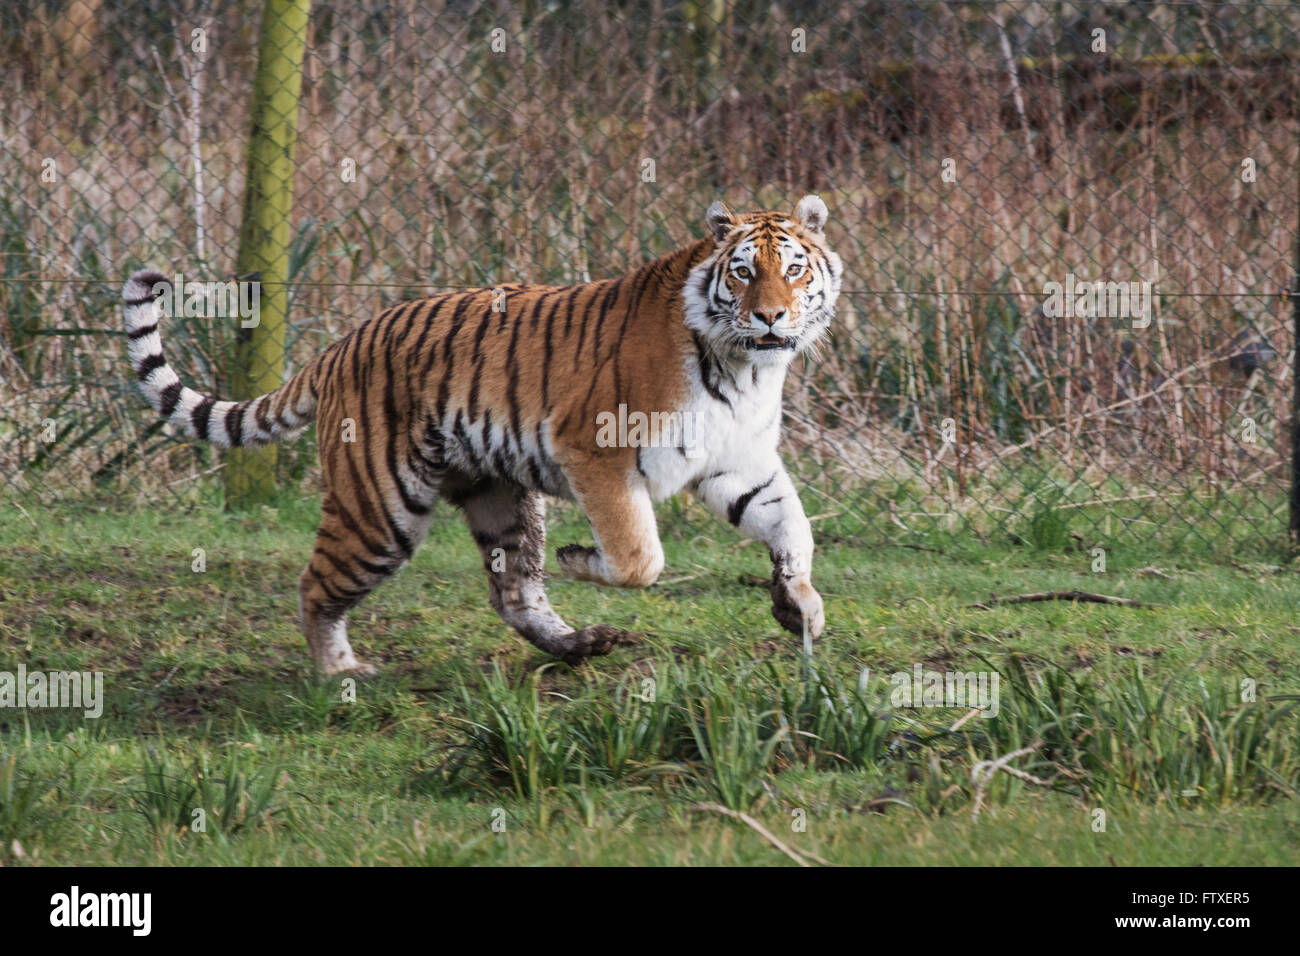 A tiger during feeding time at Longleat Safari Park - Stock Image